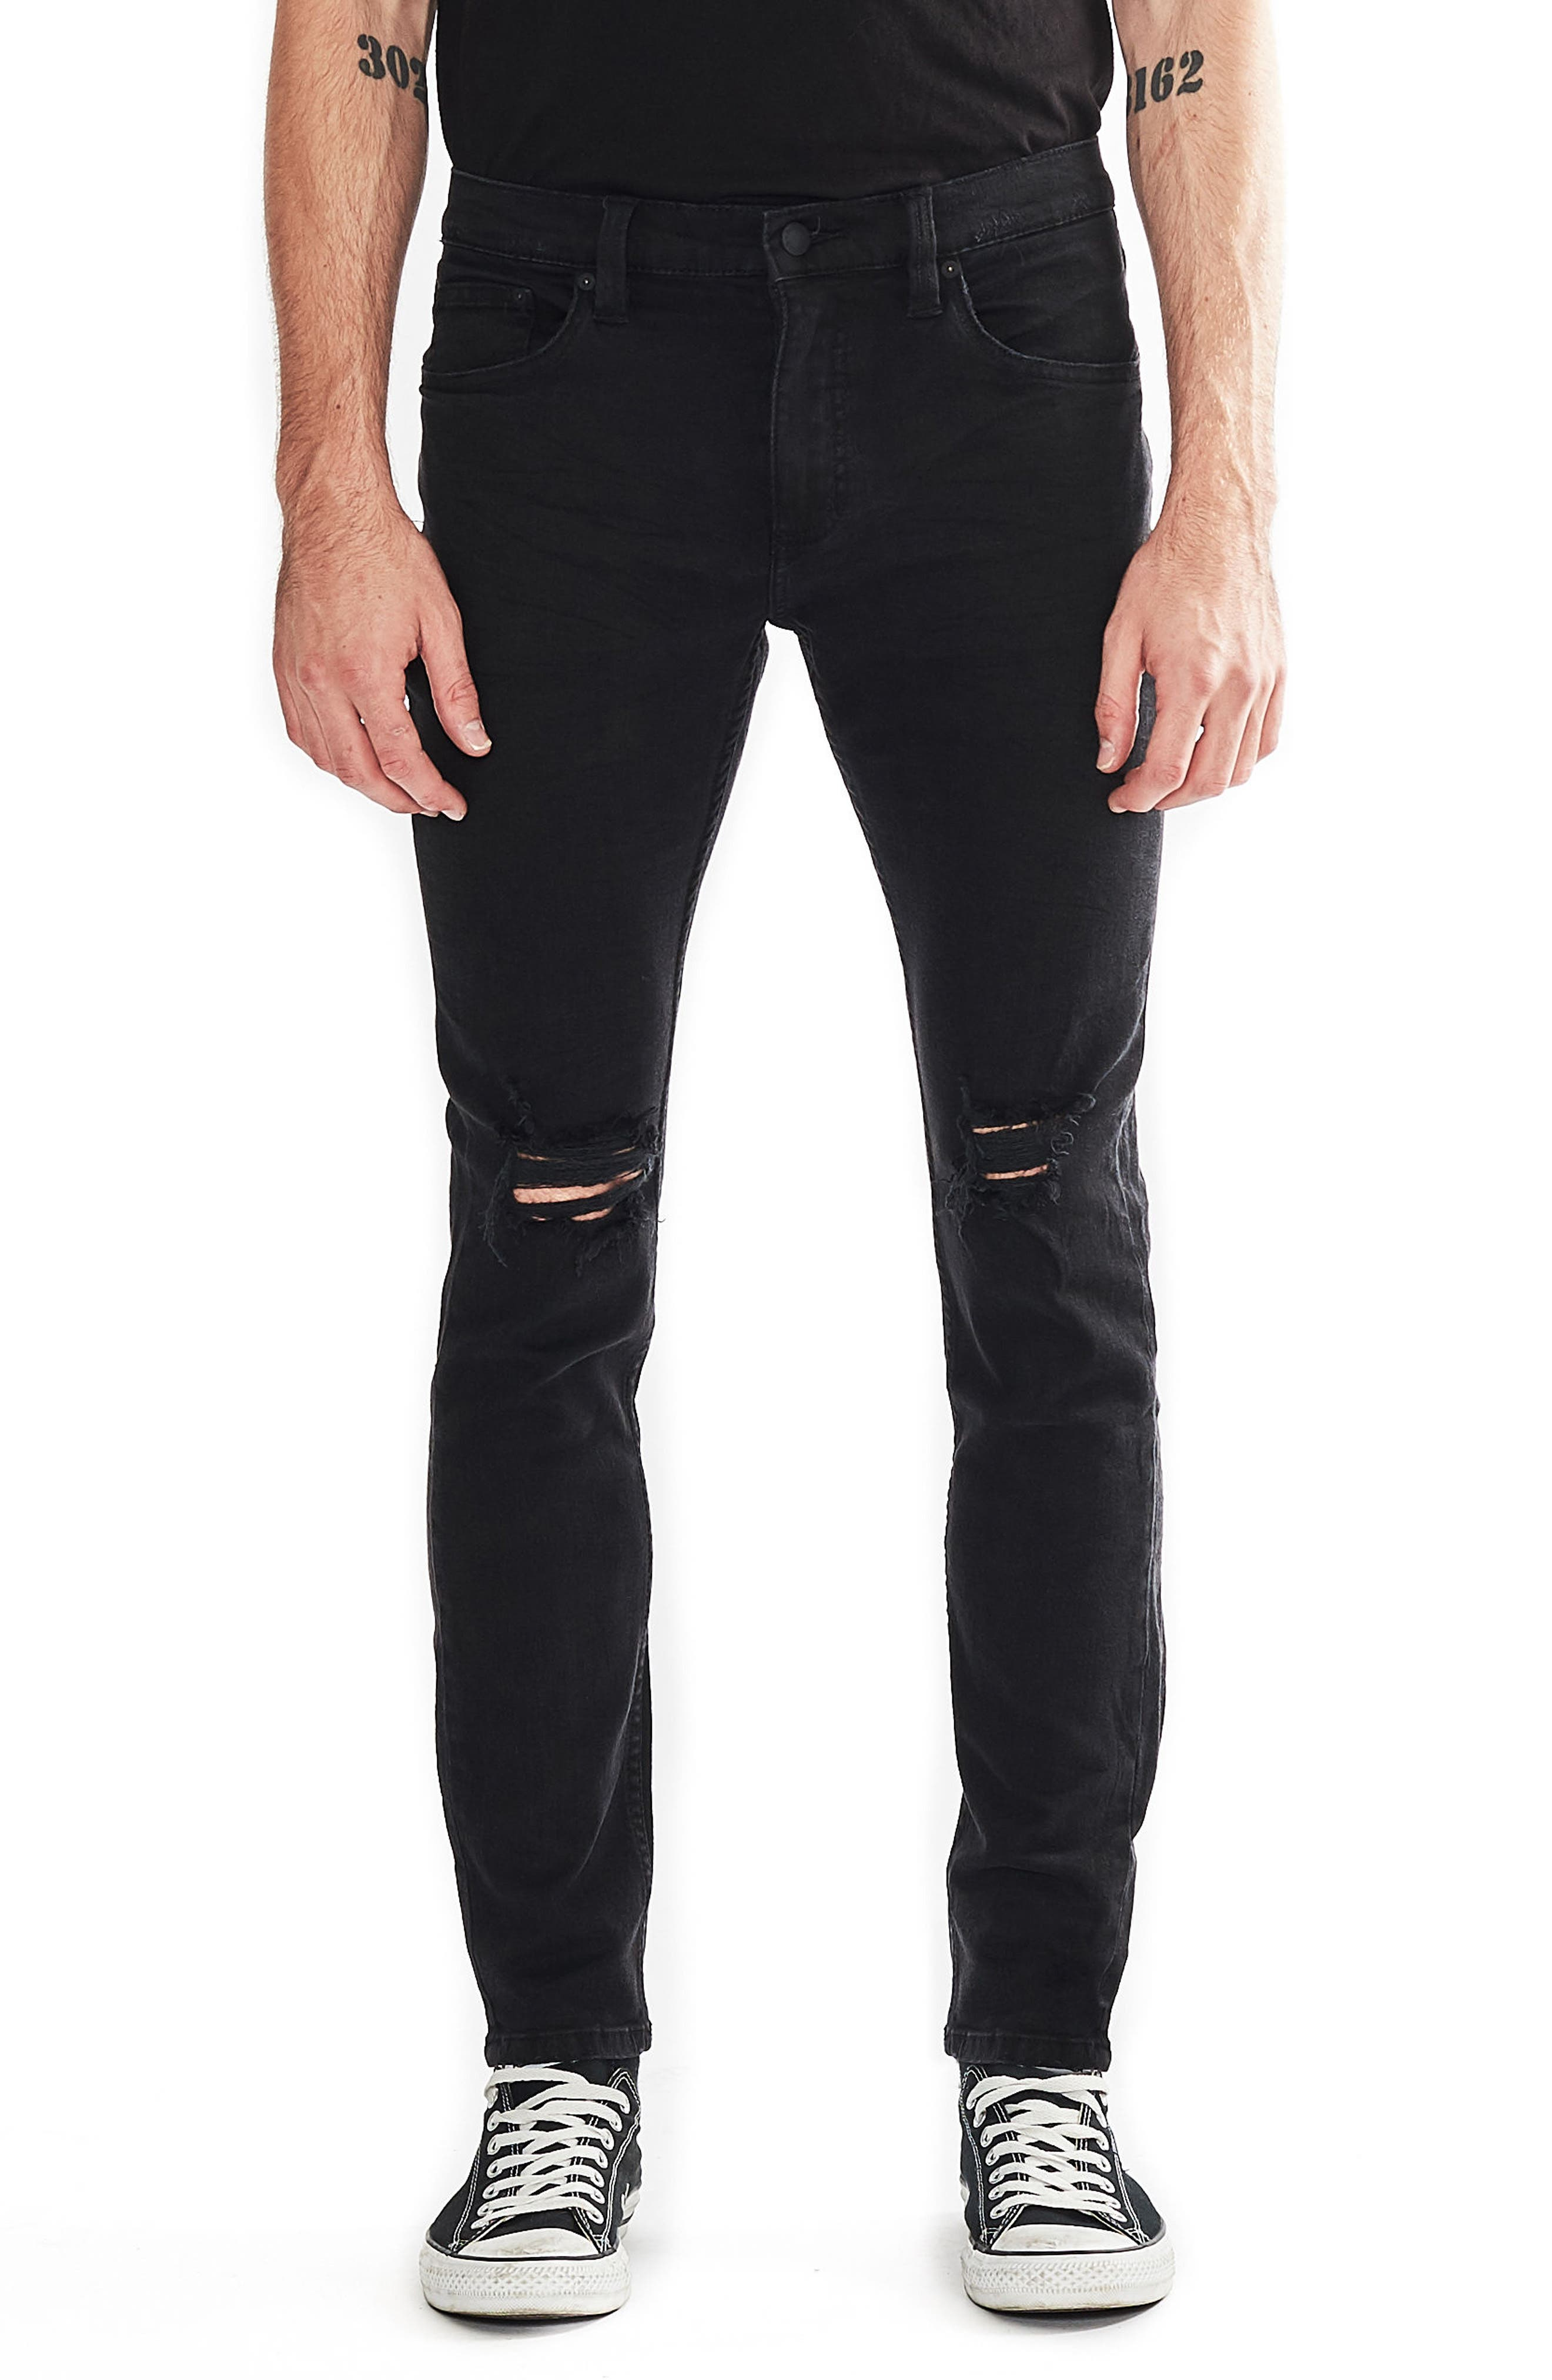 ROLLA'S Stinger Skinny Fit Jeans (Black Hole)